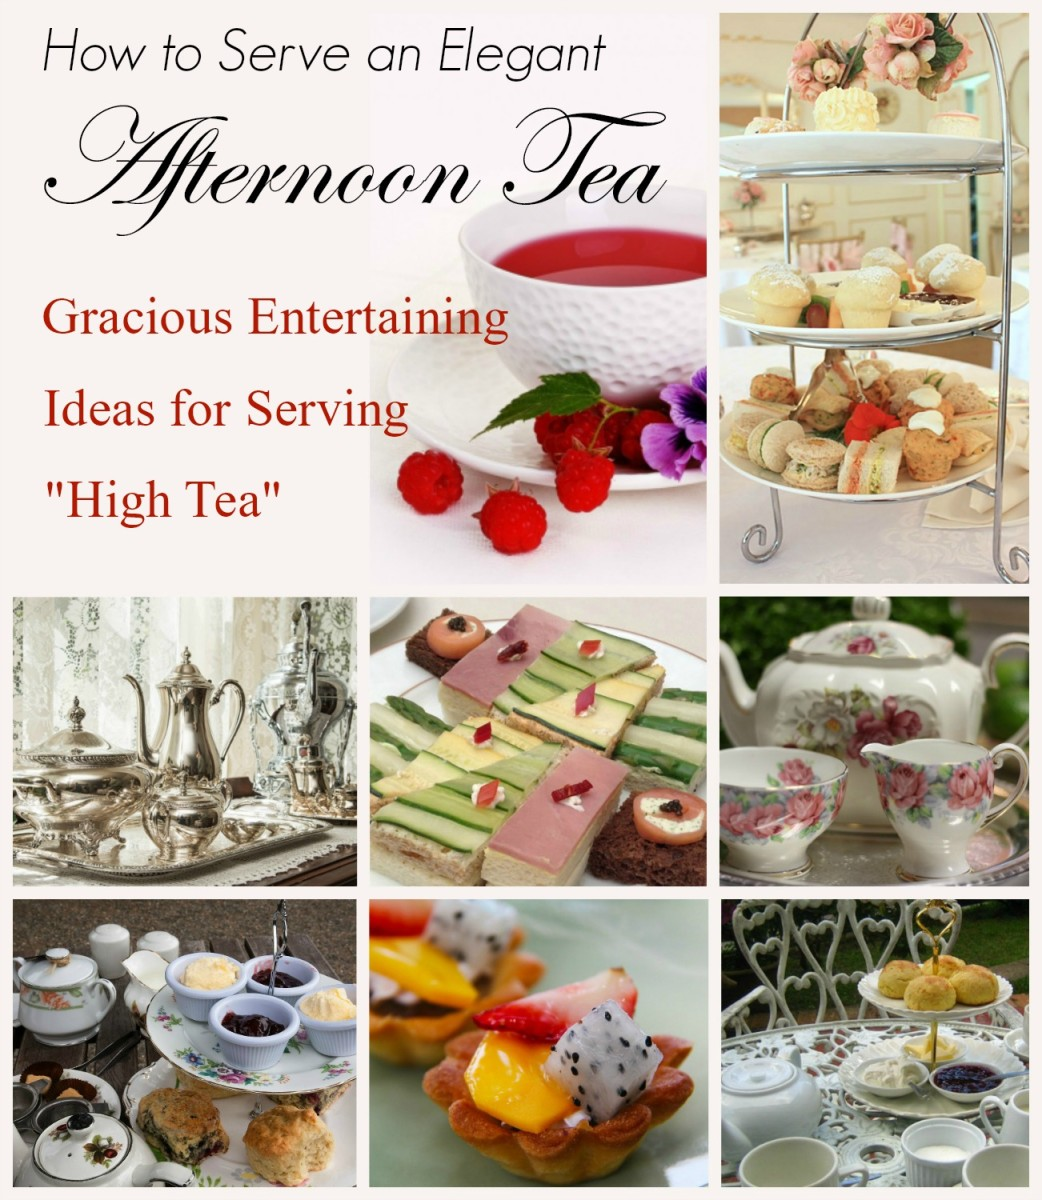 How to Serve an Elegant Afternoon Tea | Delishably